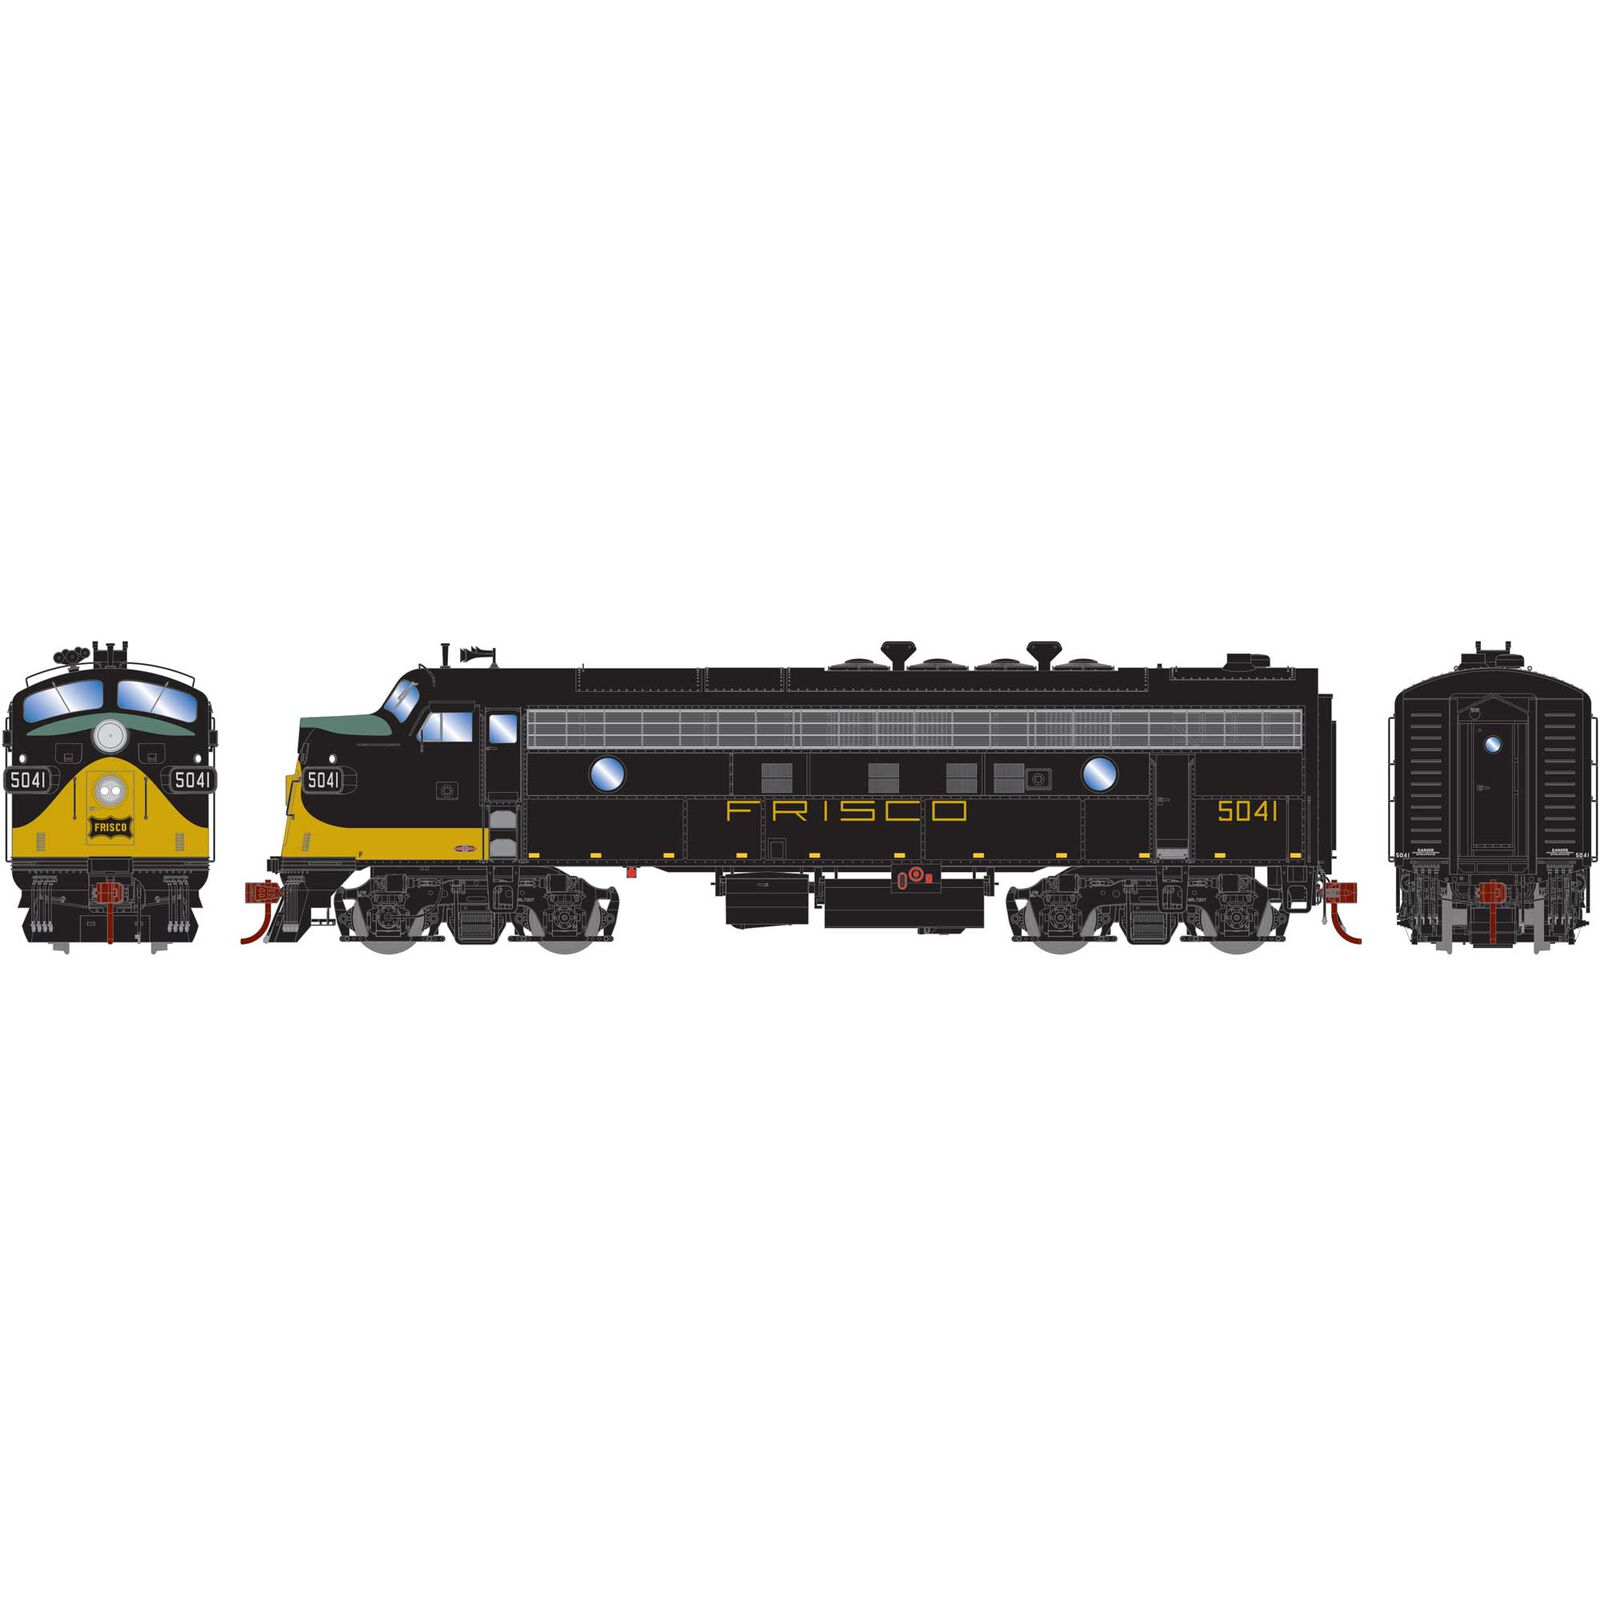 HO FP7A with DCC & Sound SLSF Black & Yellow #5041